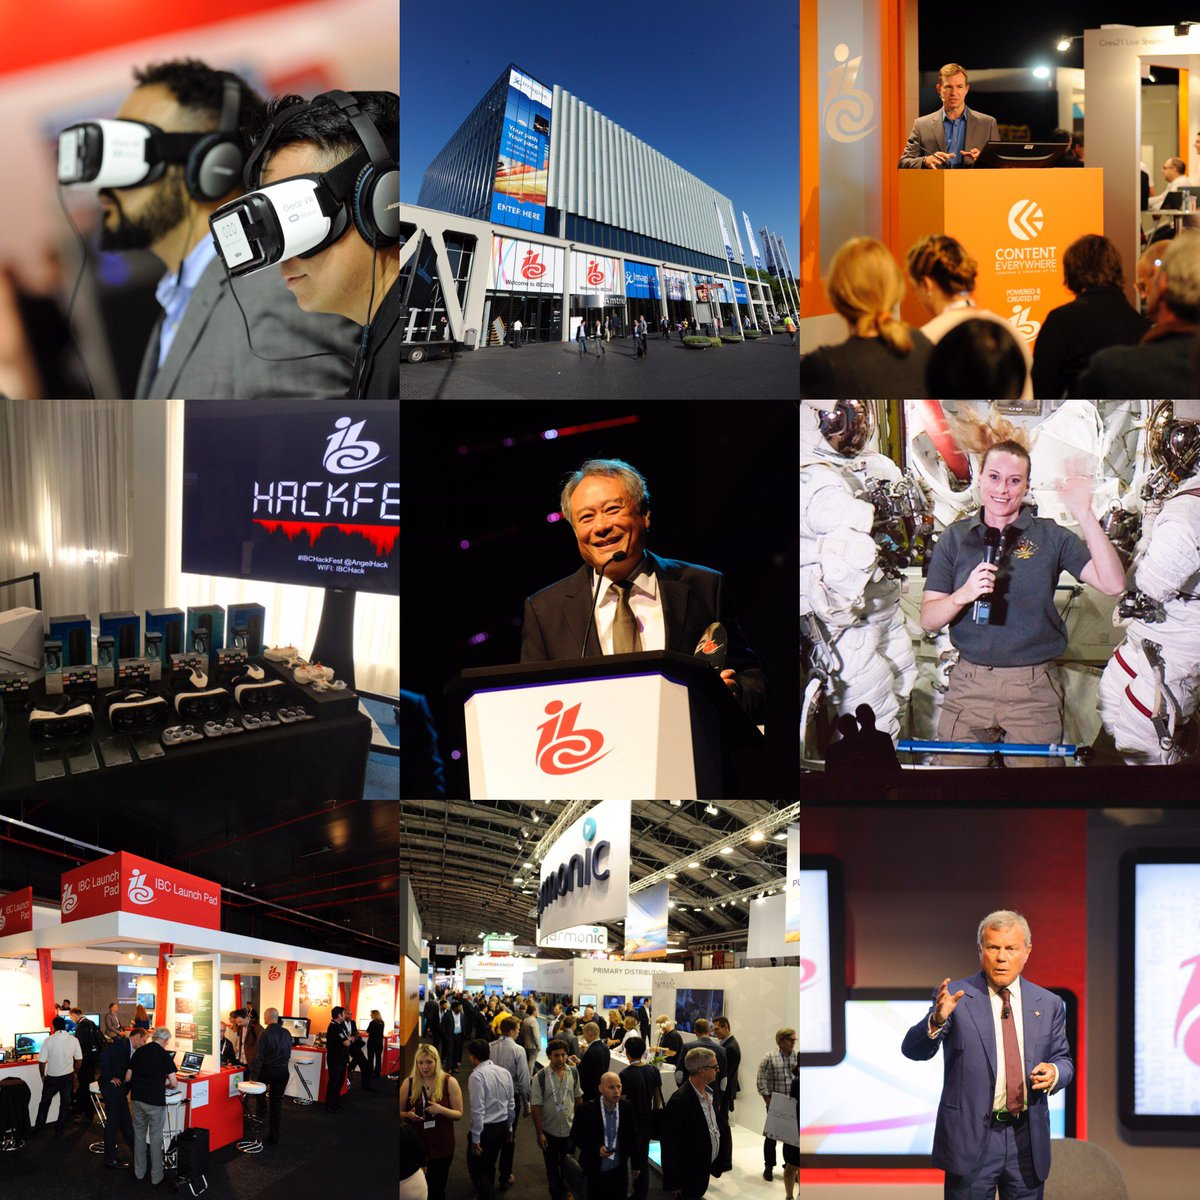 That's a wrap! Thank you to all our #IBC2016 attendees, see you again next year! https://t.co/tNyZ5LRe9h